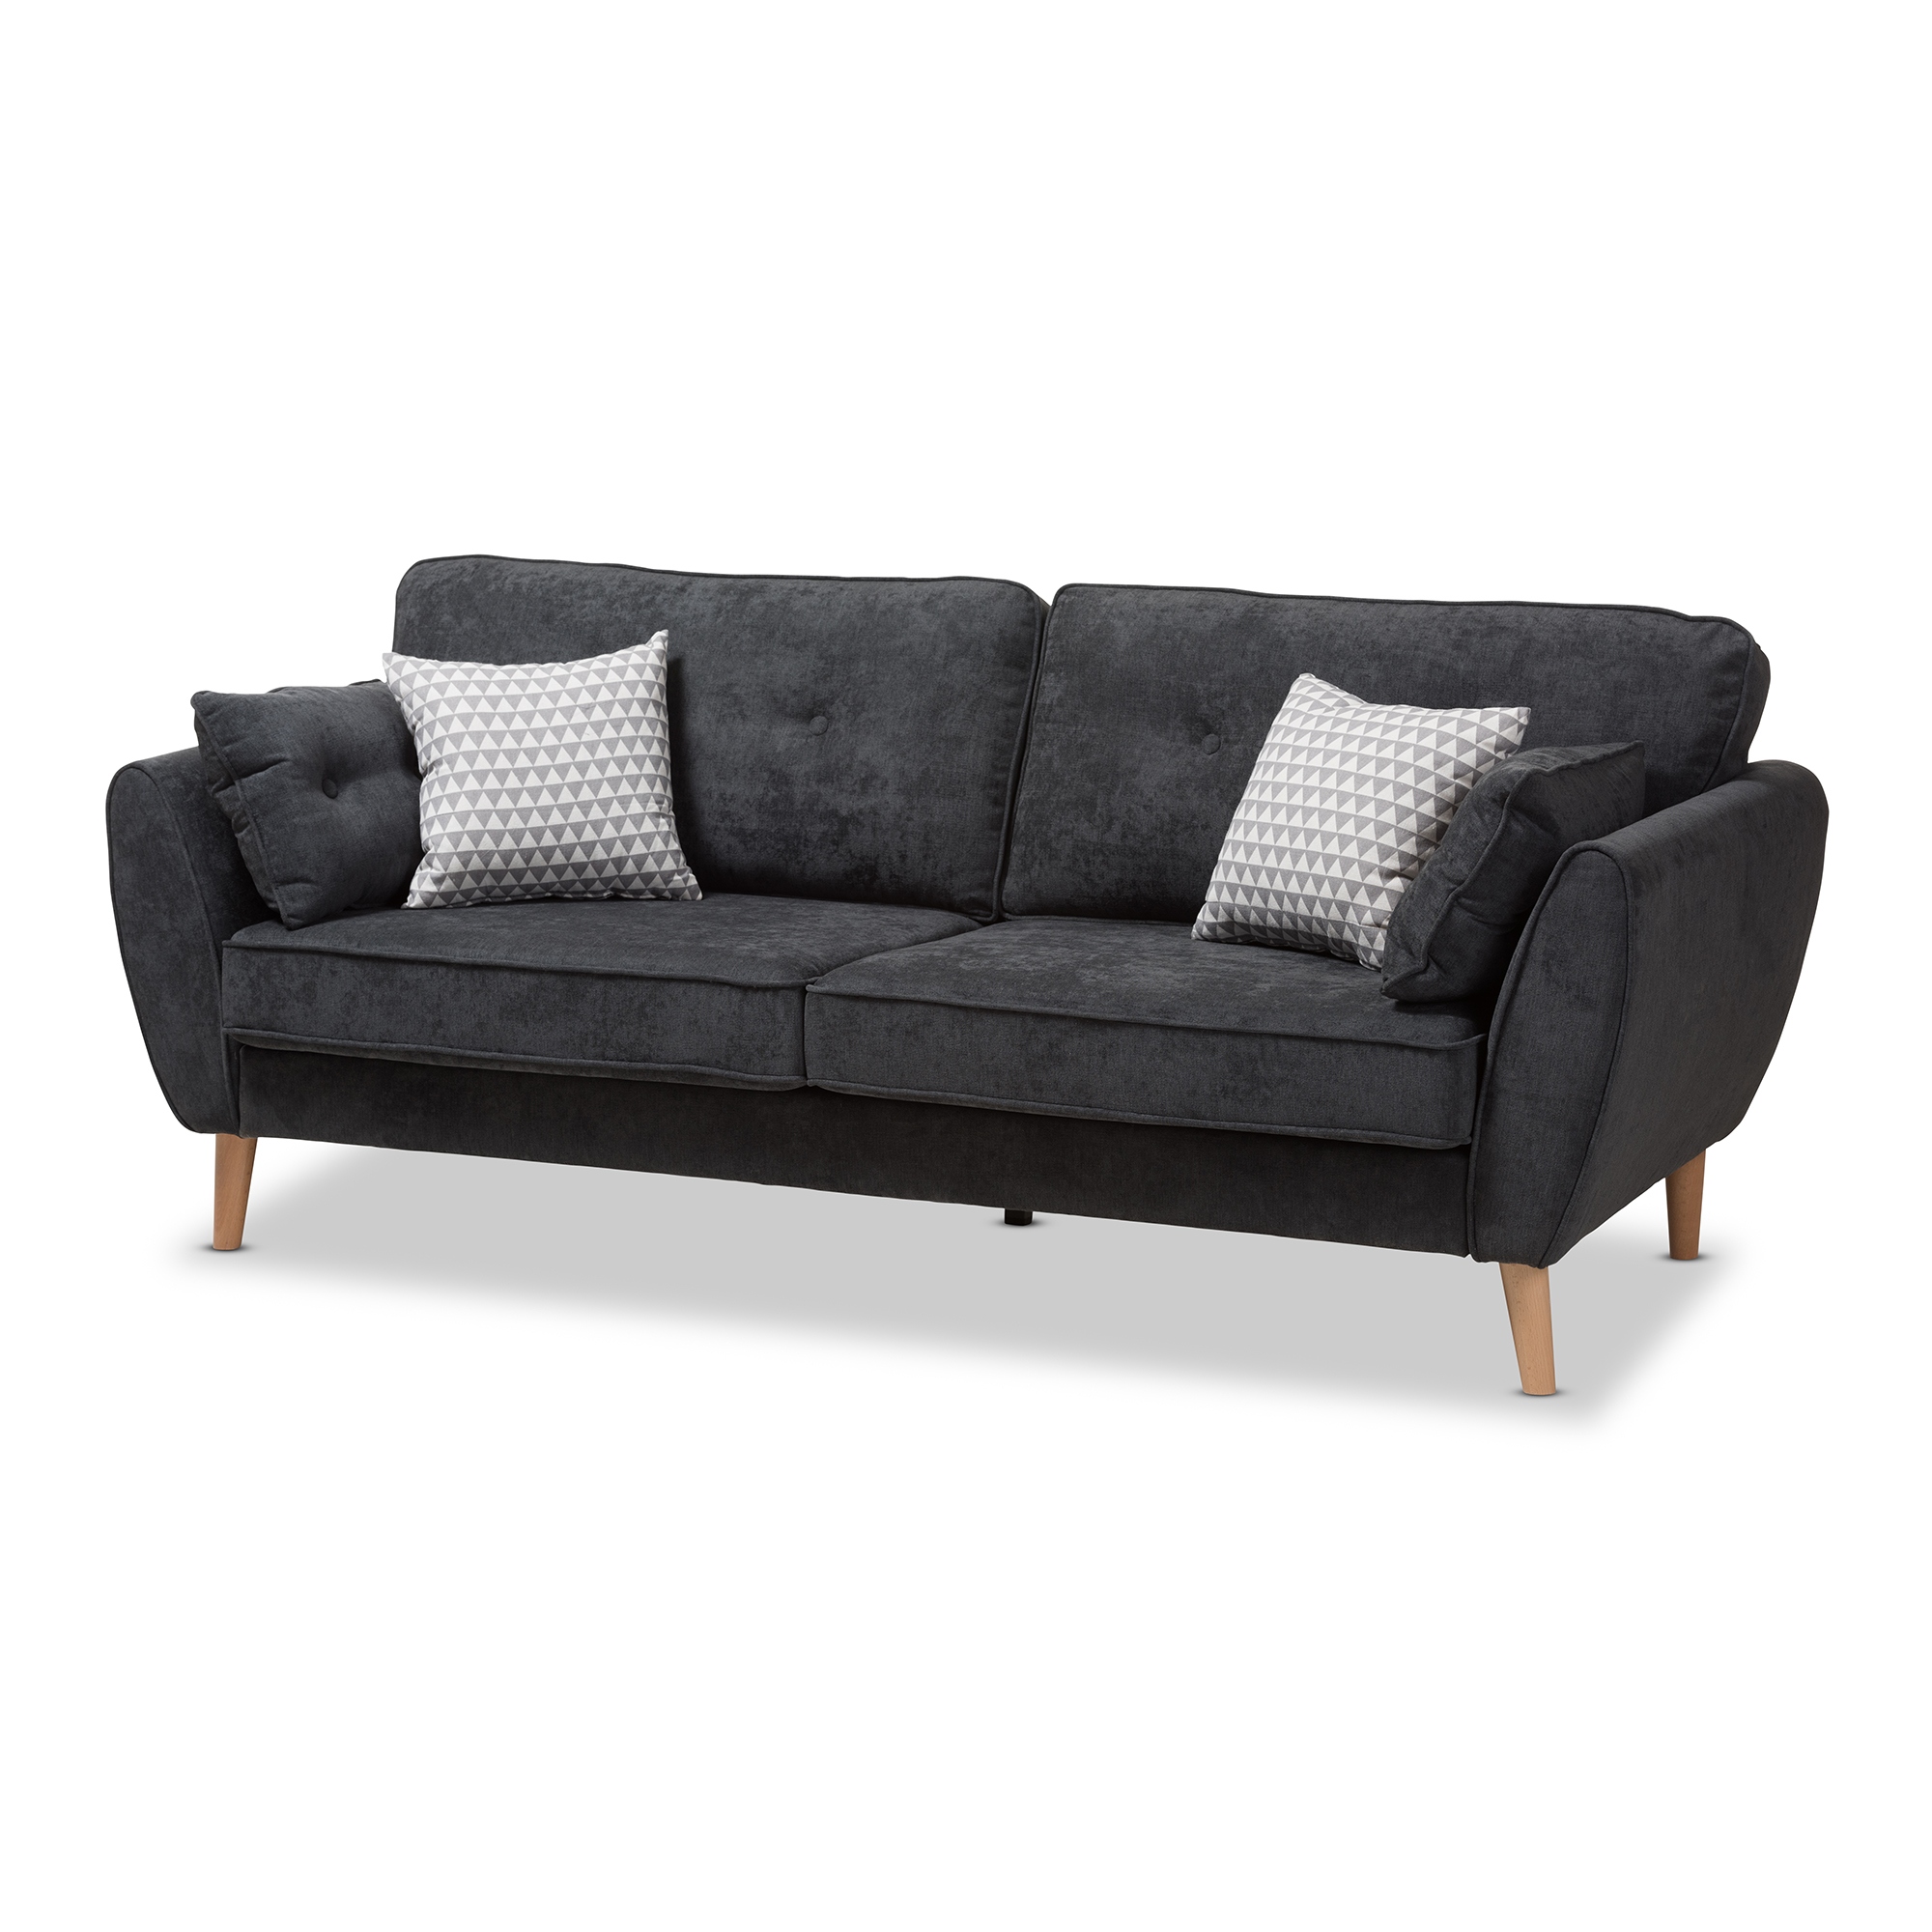 Baxton Studio Miranda Mid Century Modern Dark Grey Fabric Upholstered Sofa  Affordable Modern Furniture In